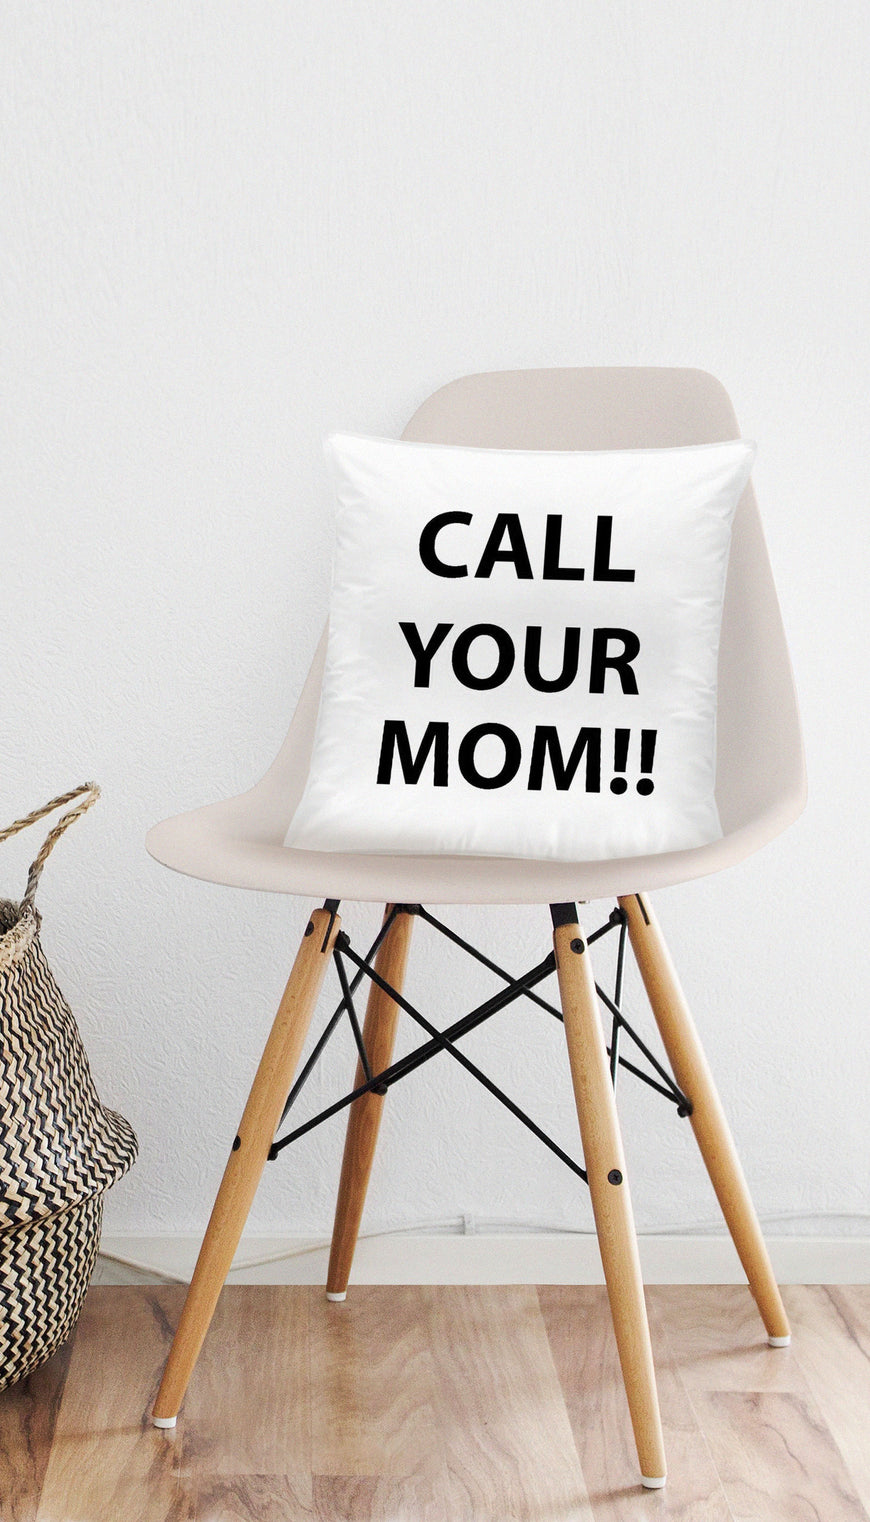 Call Your Mom!! Funny & Clever Home Throw Pillow Gift | Sarcastic ME